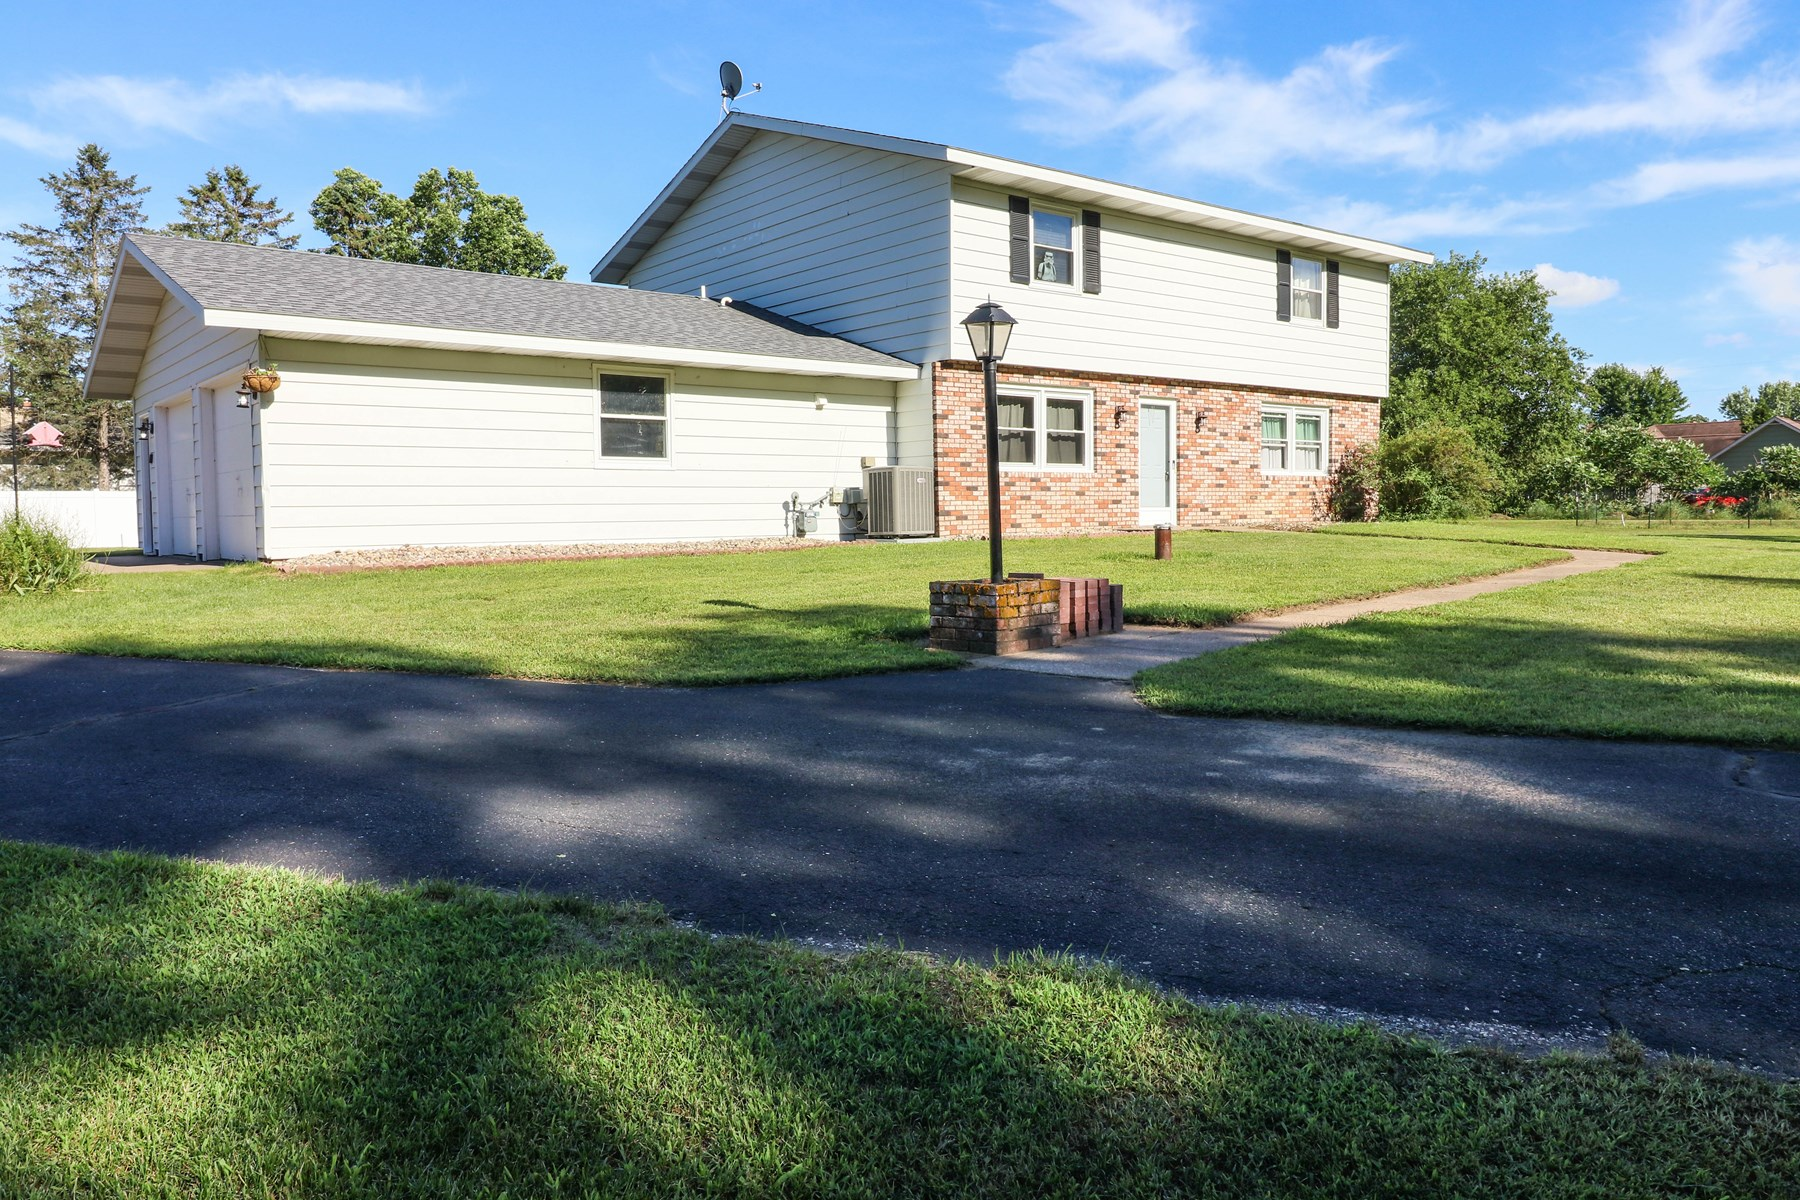 Home for Sale in Stevens Point, WI - County Feel